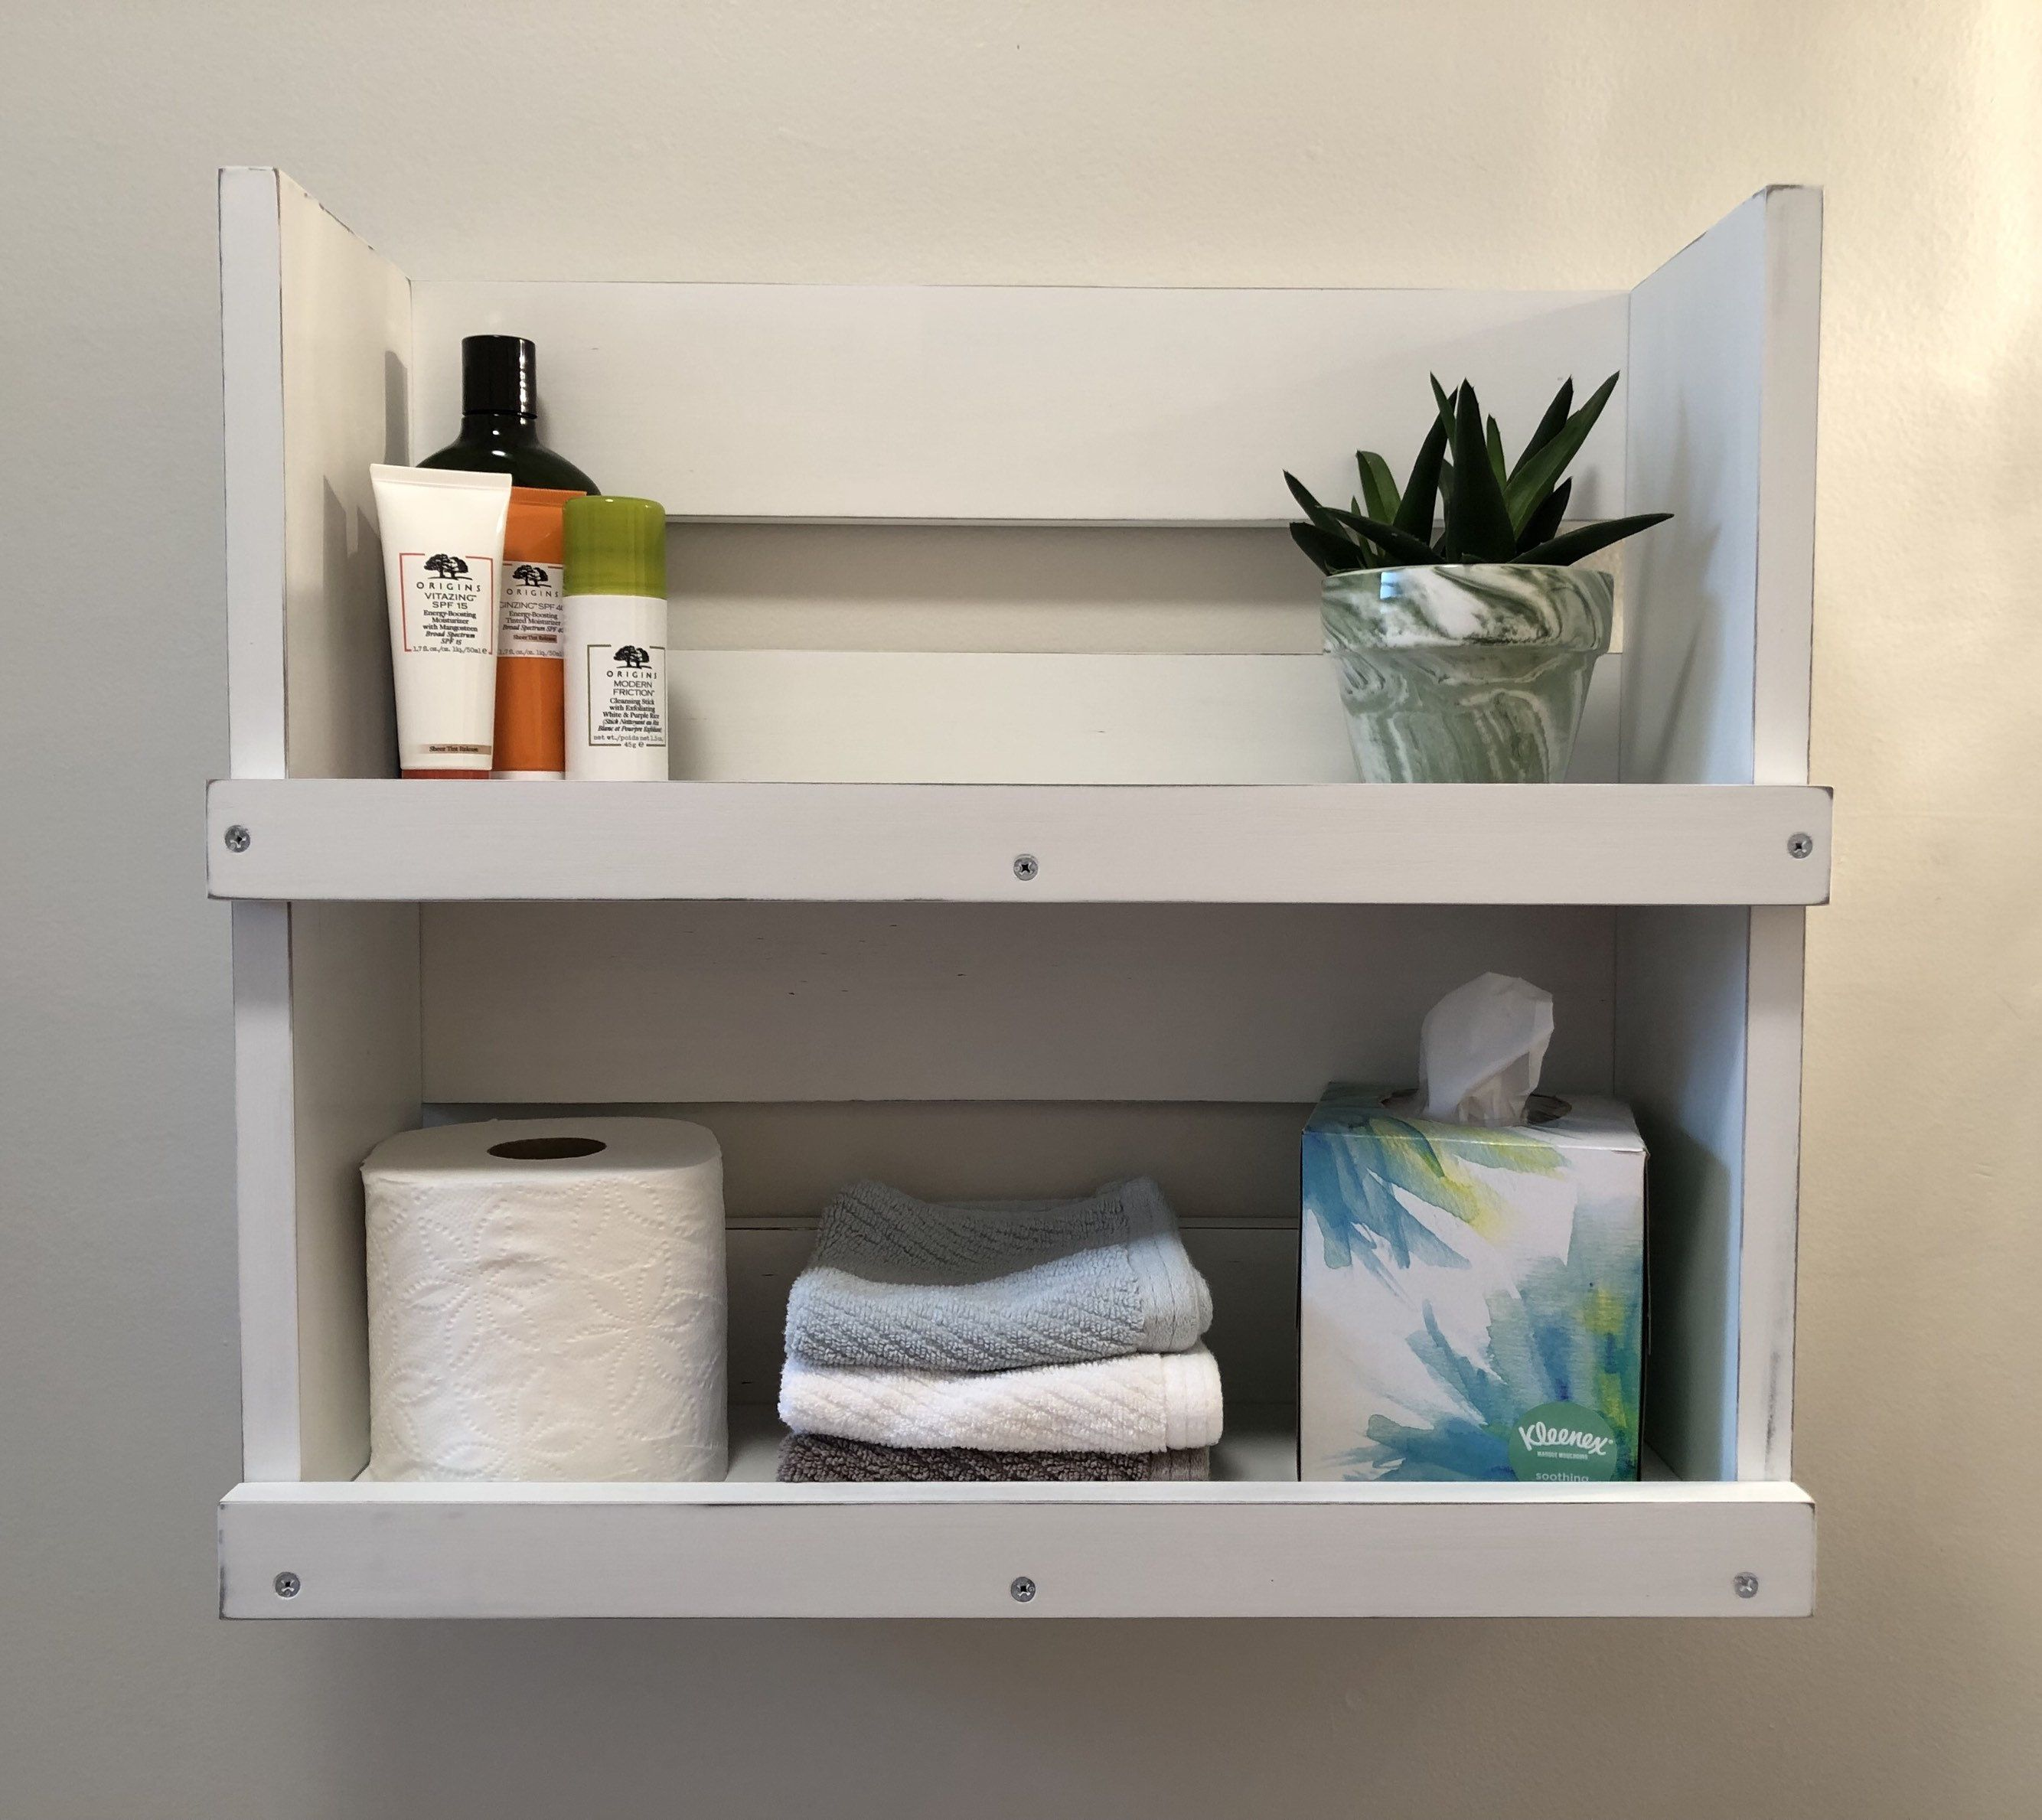 Bathroom Distressed White Wood Rustic Wall Mounted Shelf